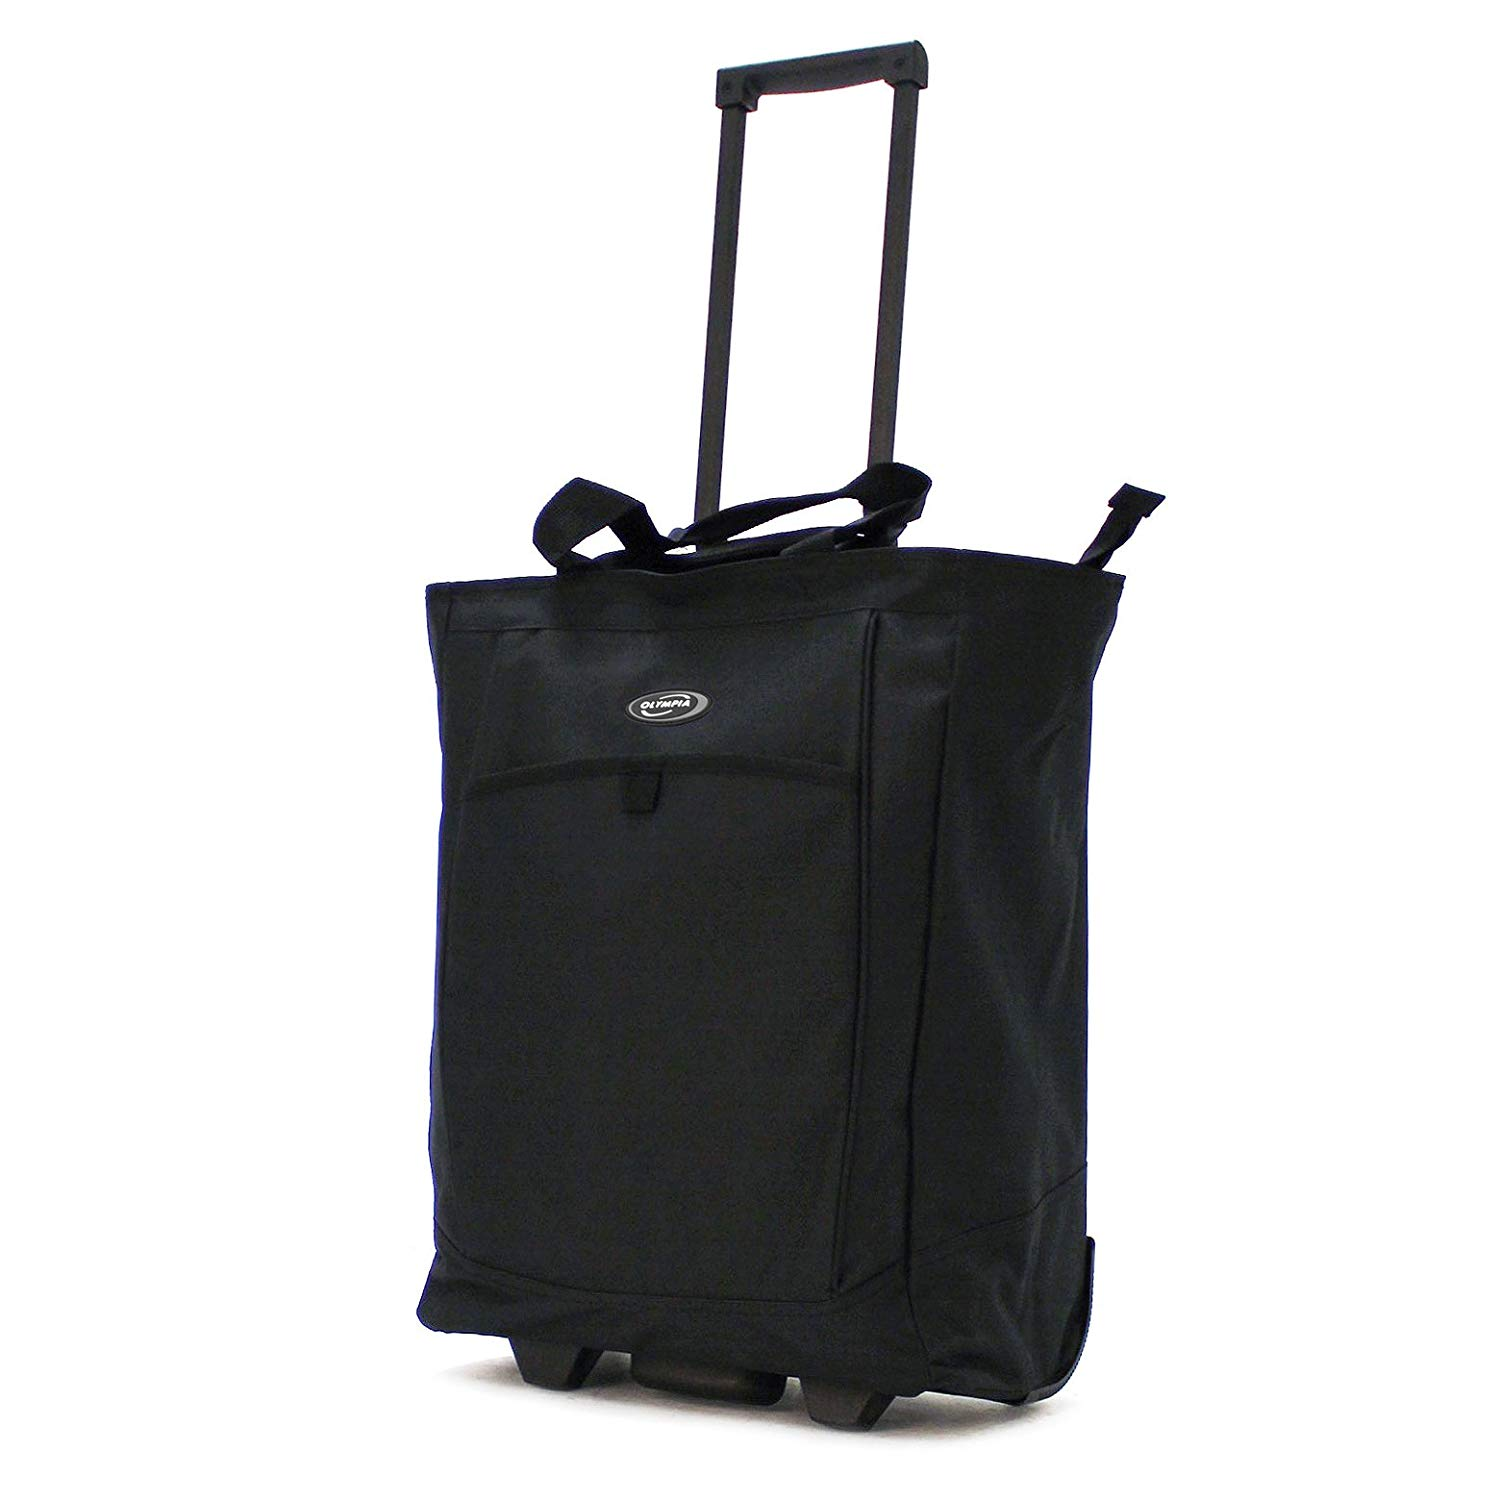 Olympia Rolling Luggage Tote, 20-Inch